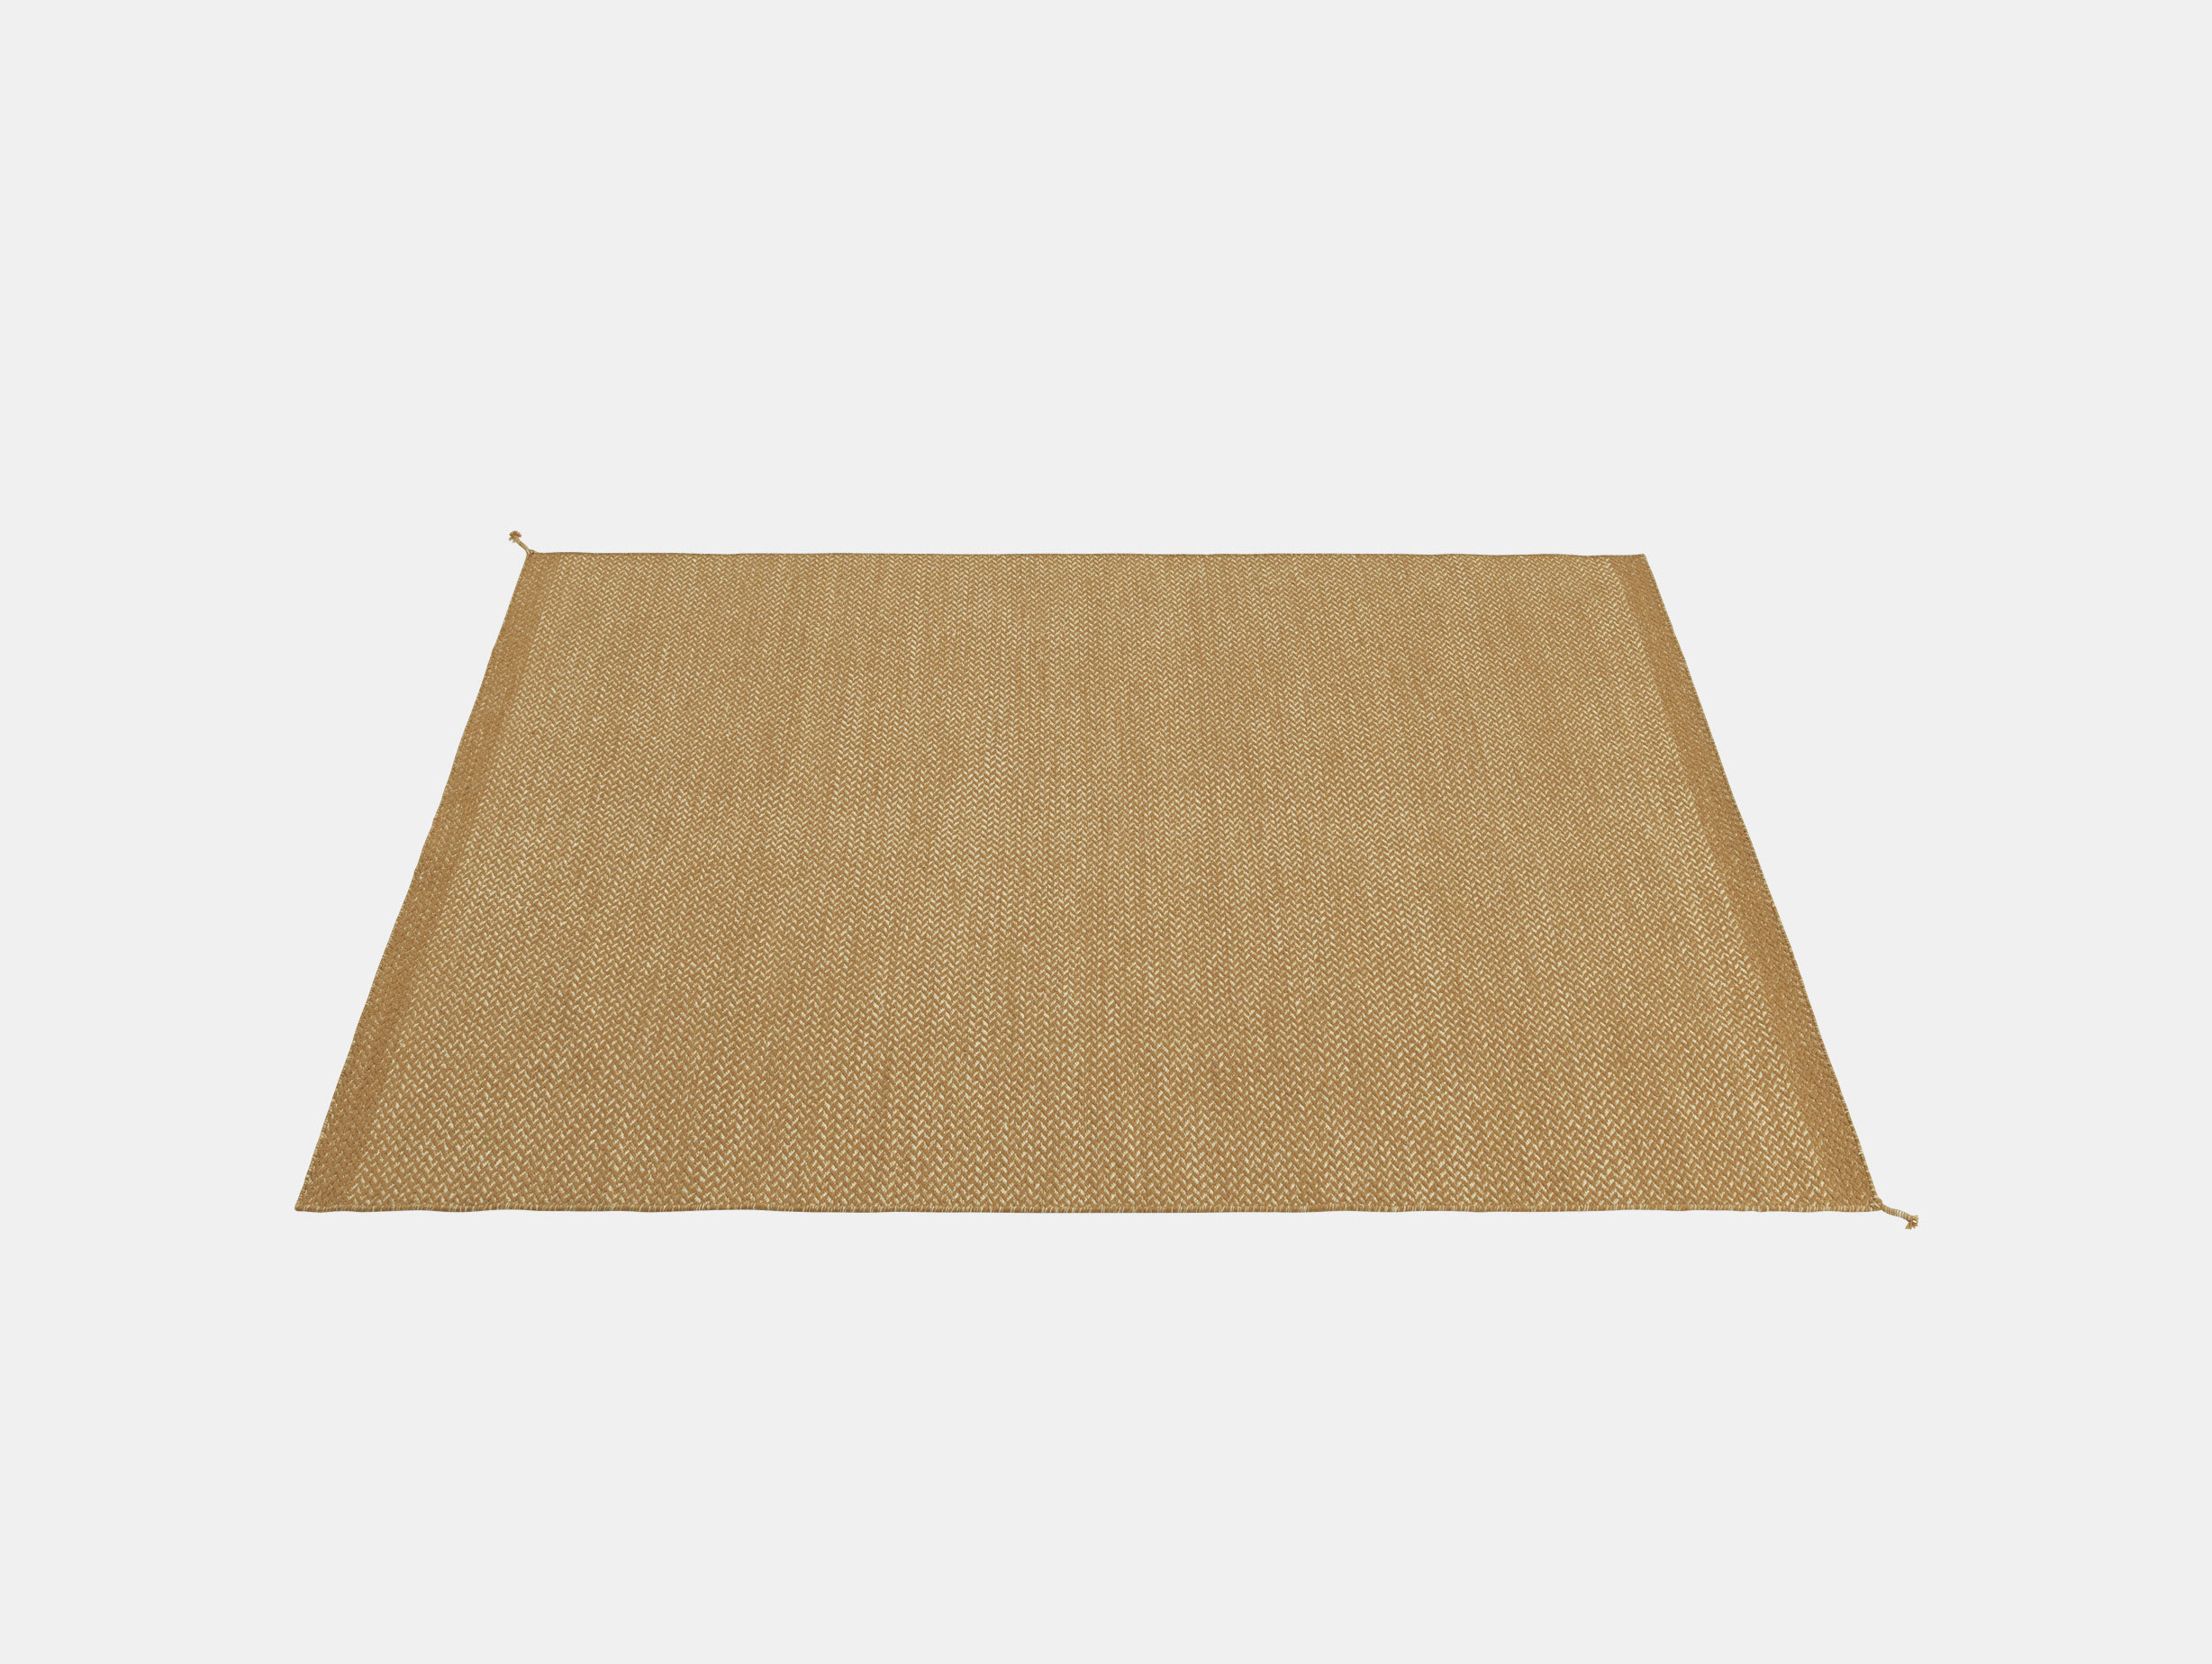 Muuto Ply Rug 240X170 B Orange Margrethe Odgaard